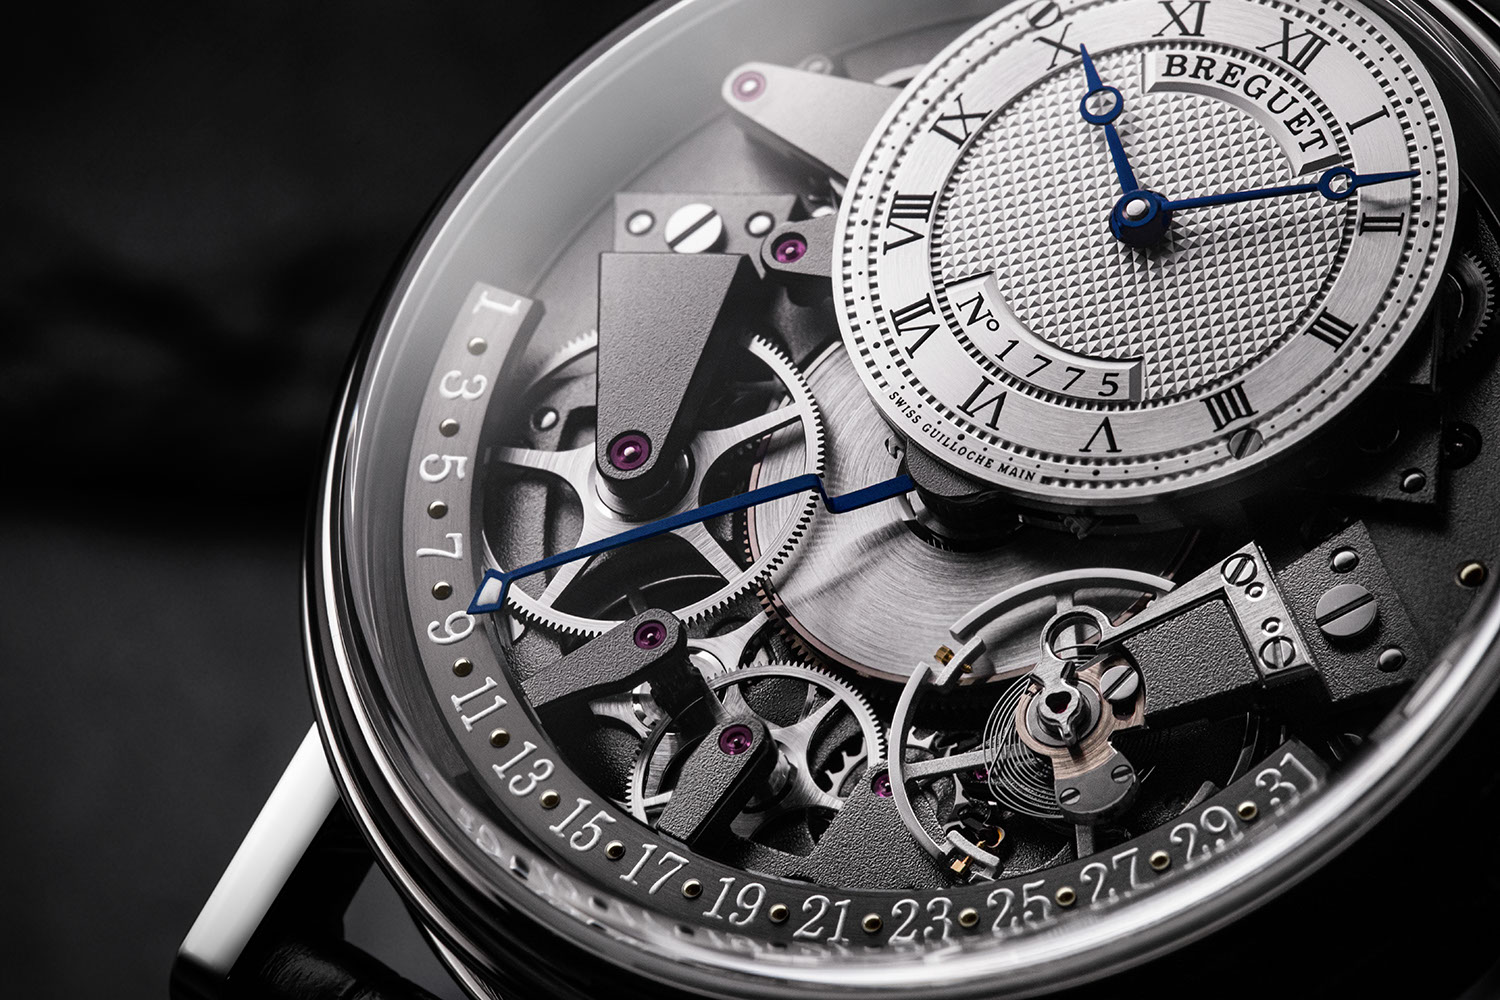 A closer look at the retrograde date on the Breguet Tradition Quantième Retrograde 7597 in white gold